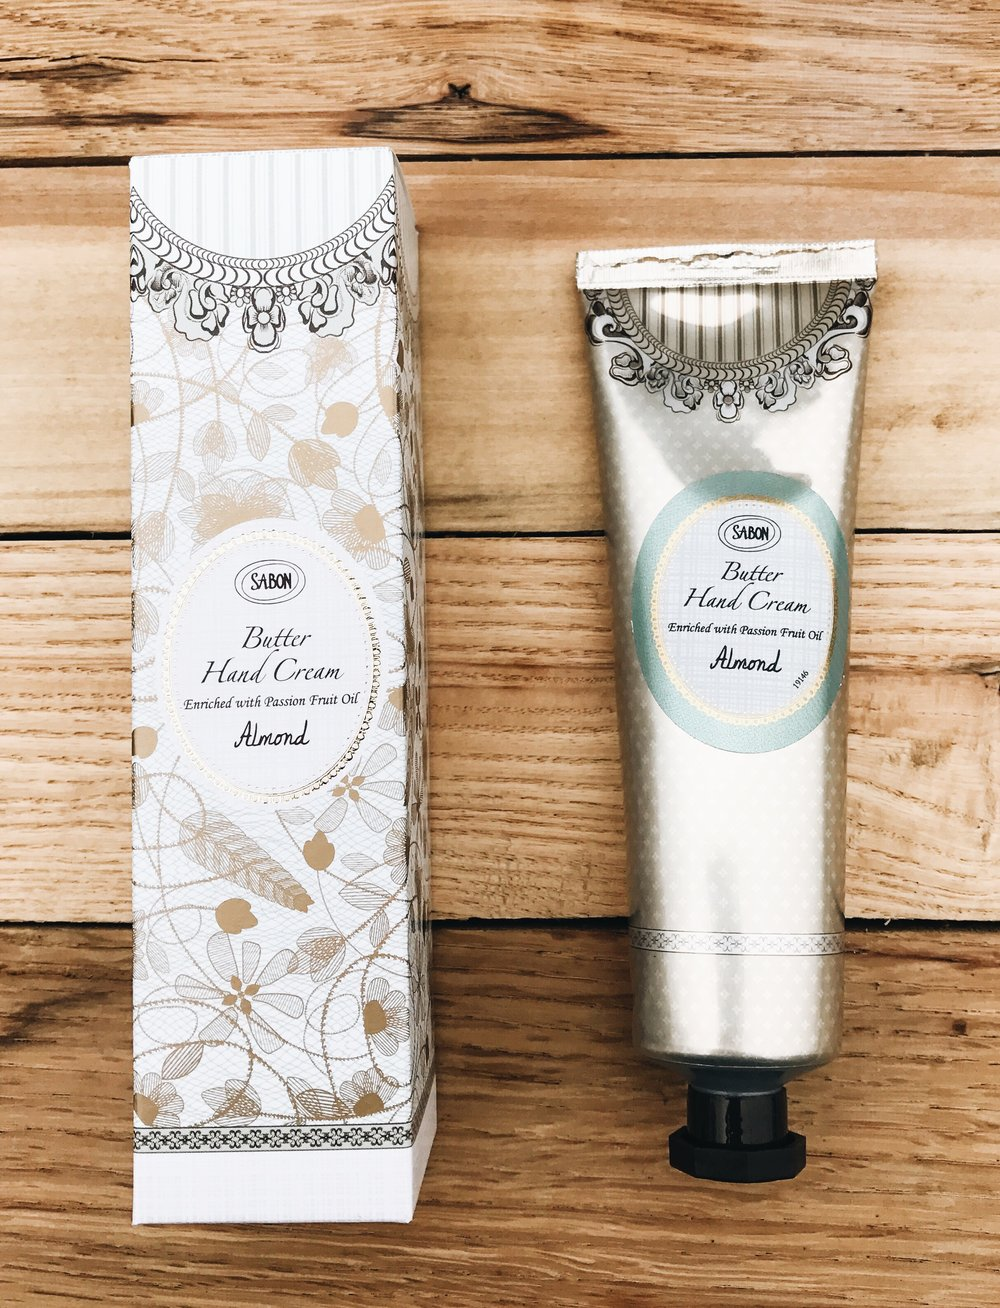 Sabon Butter Hand Cream will leave your hands feeling velvety soft. This hand cream instantly moisturizes and make you skin look and feel beautiful.